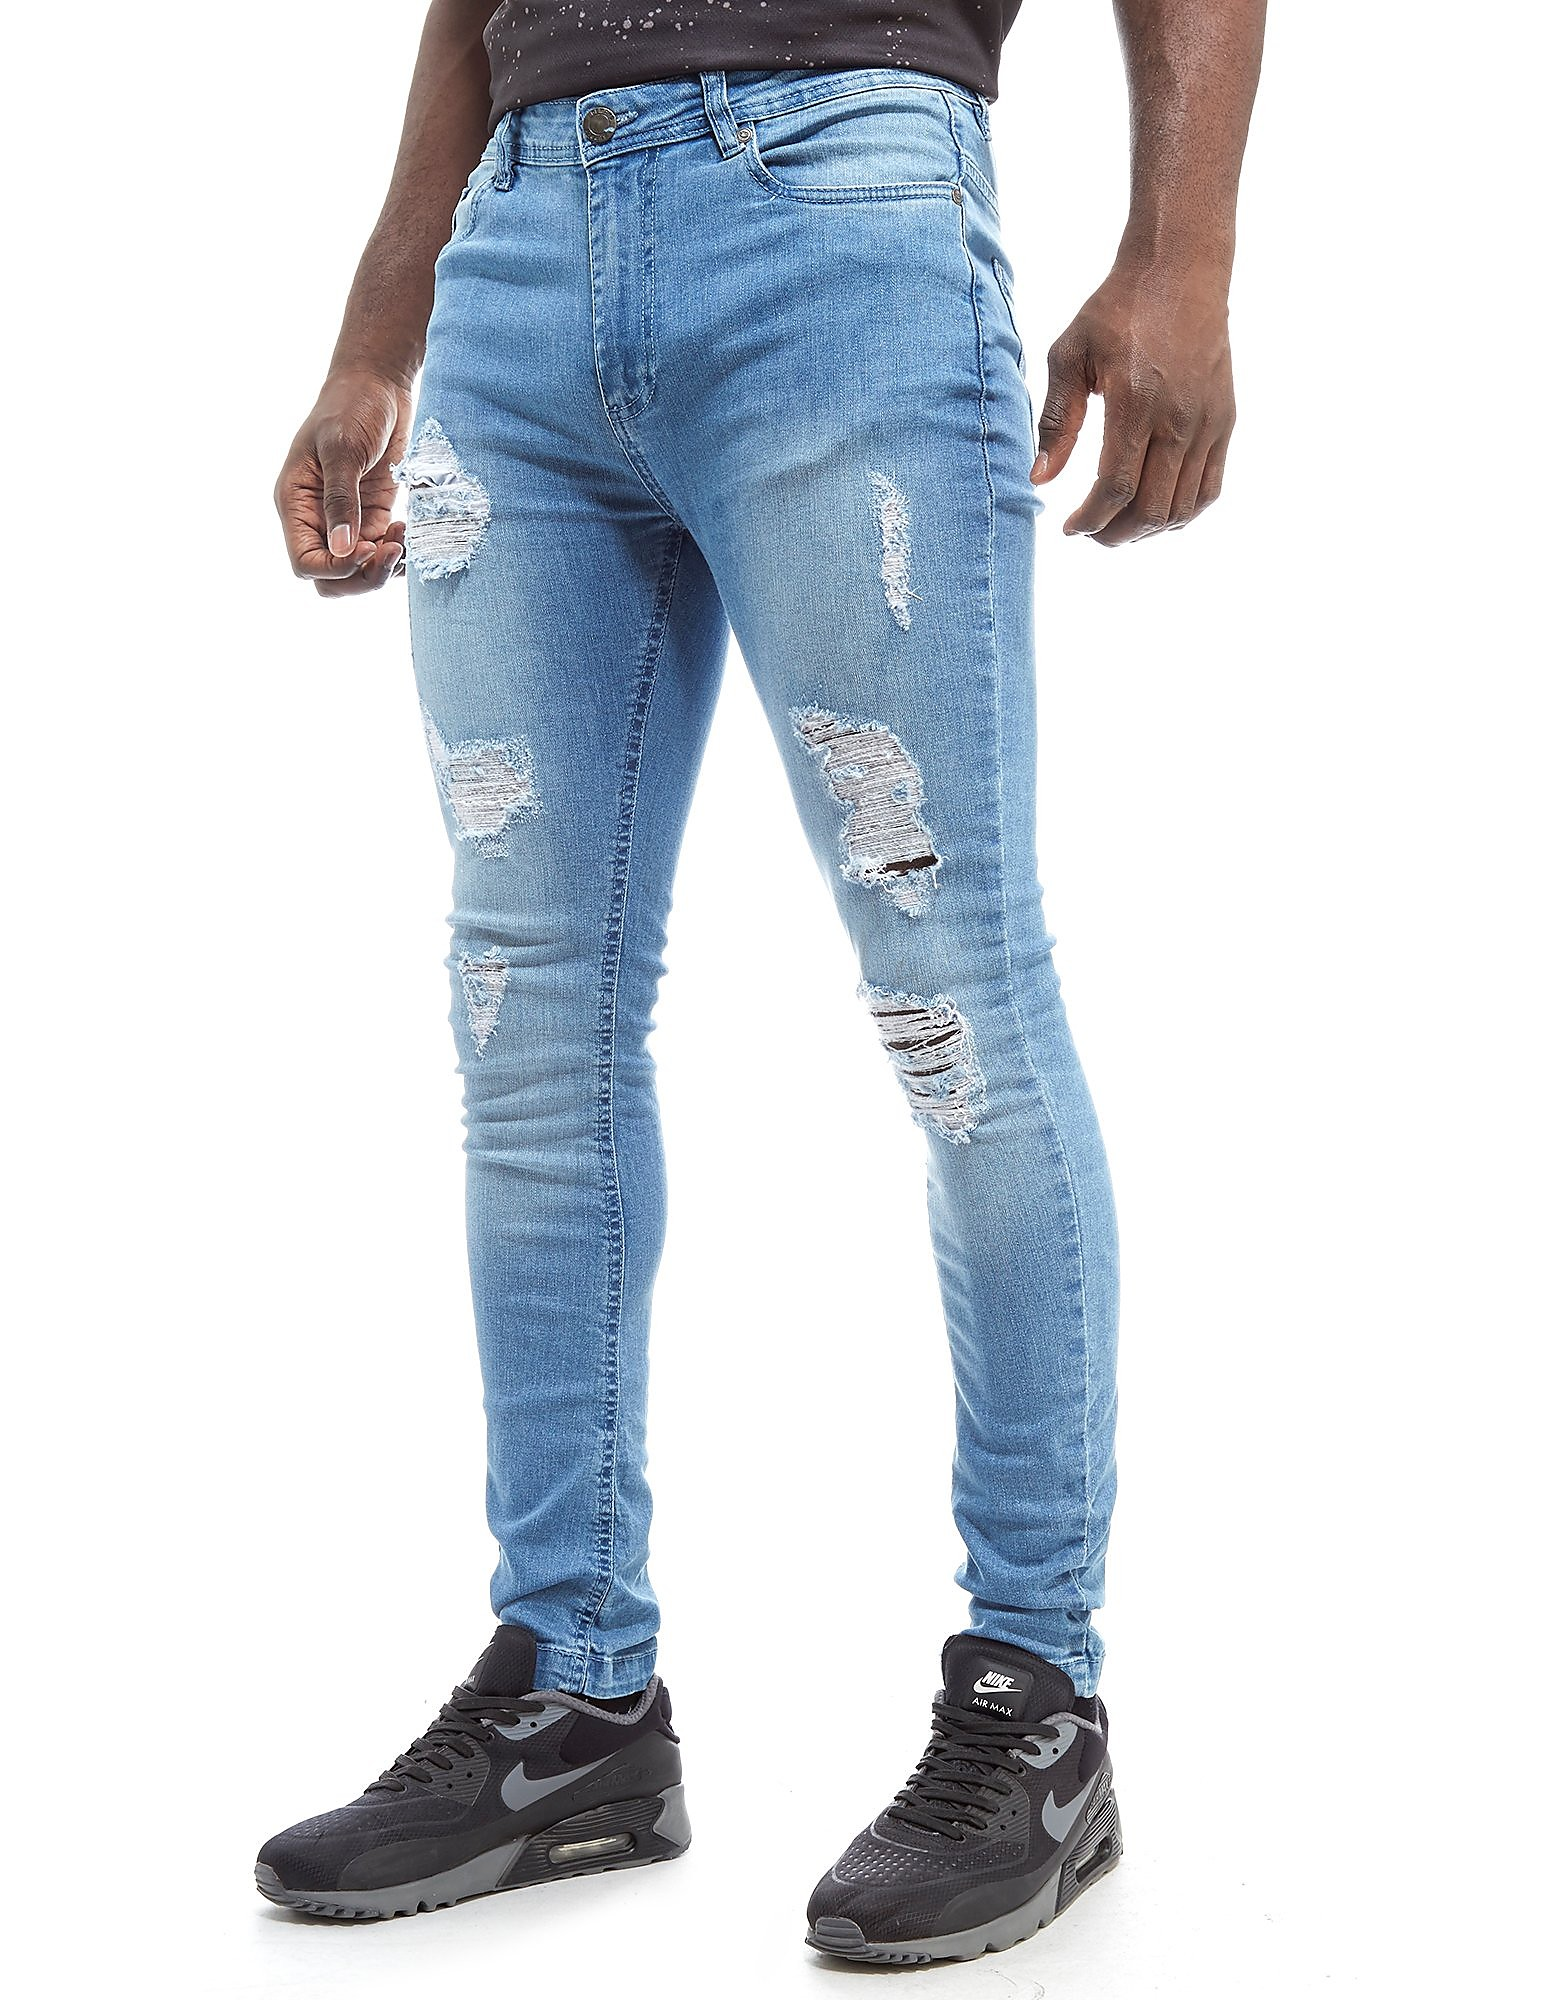 Supply & Demand Caliber Jeans - Only at JD, Blue